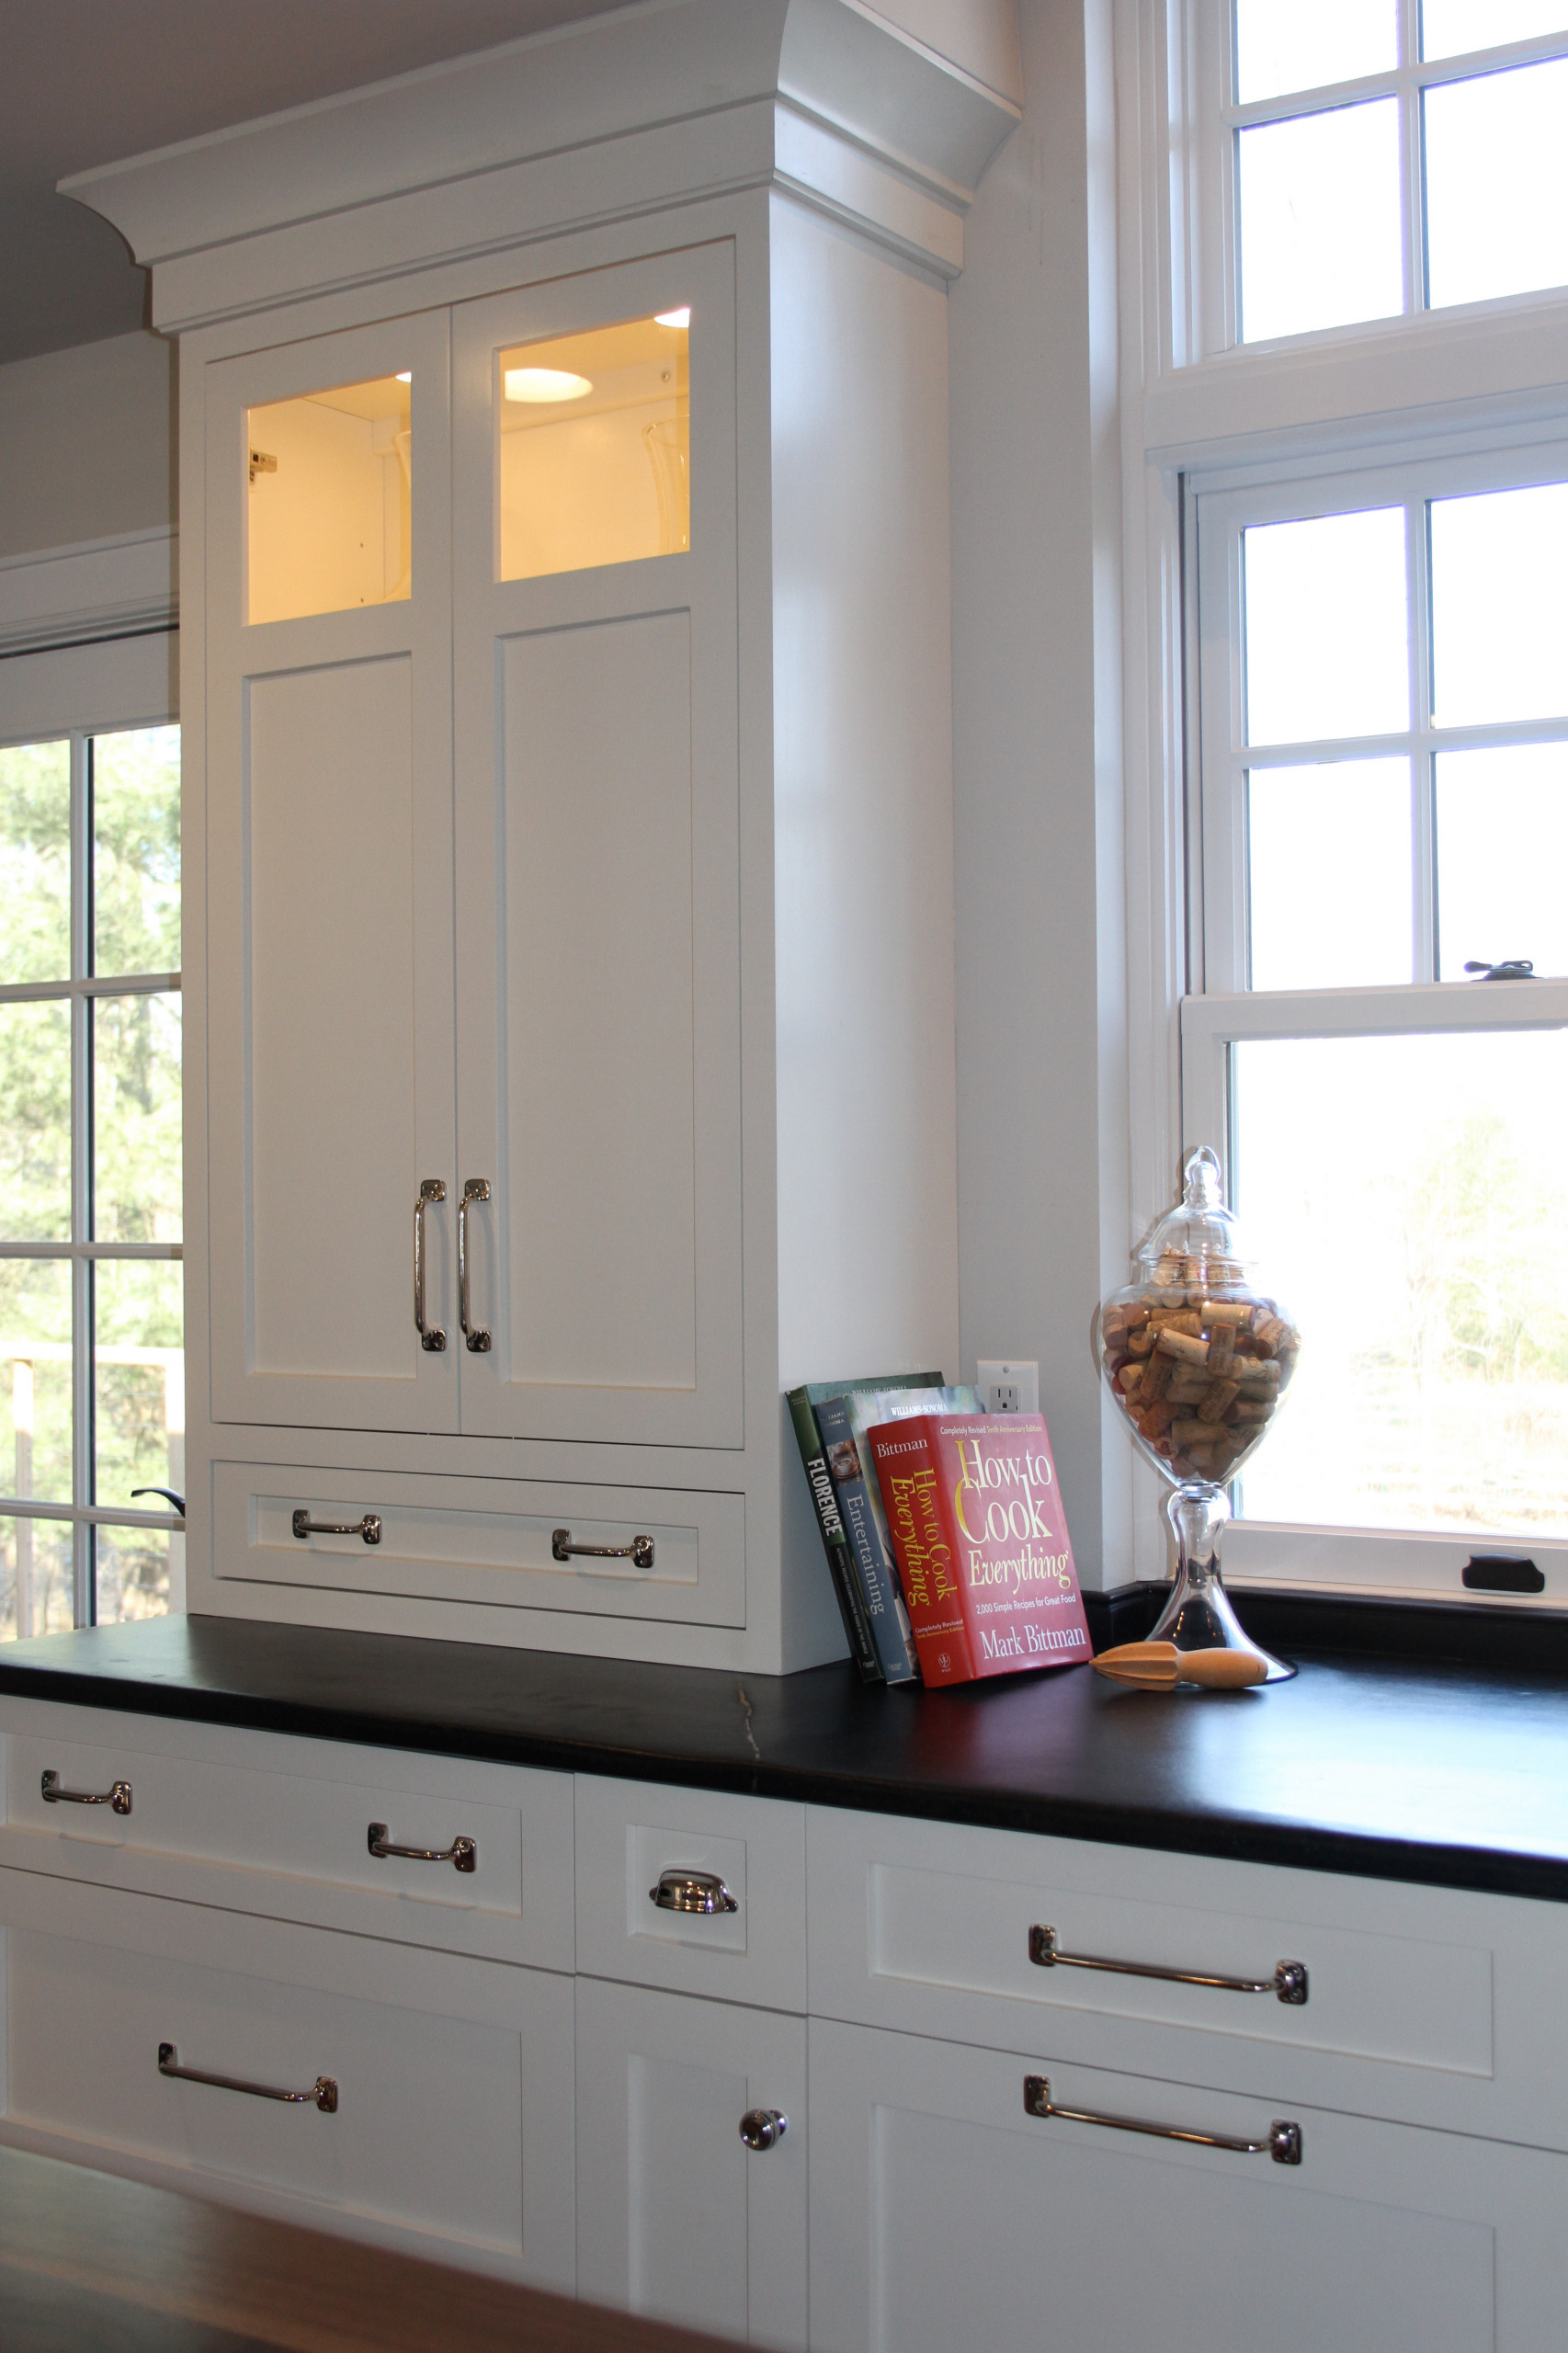 Wall Cabinet on Countertop